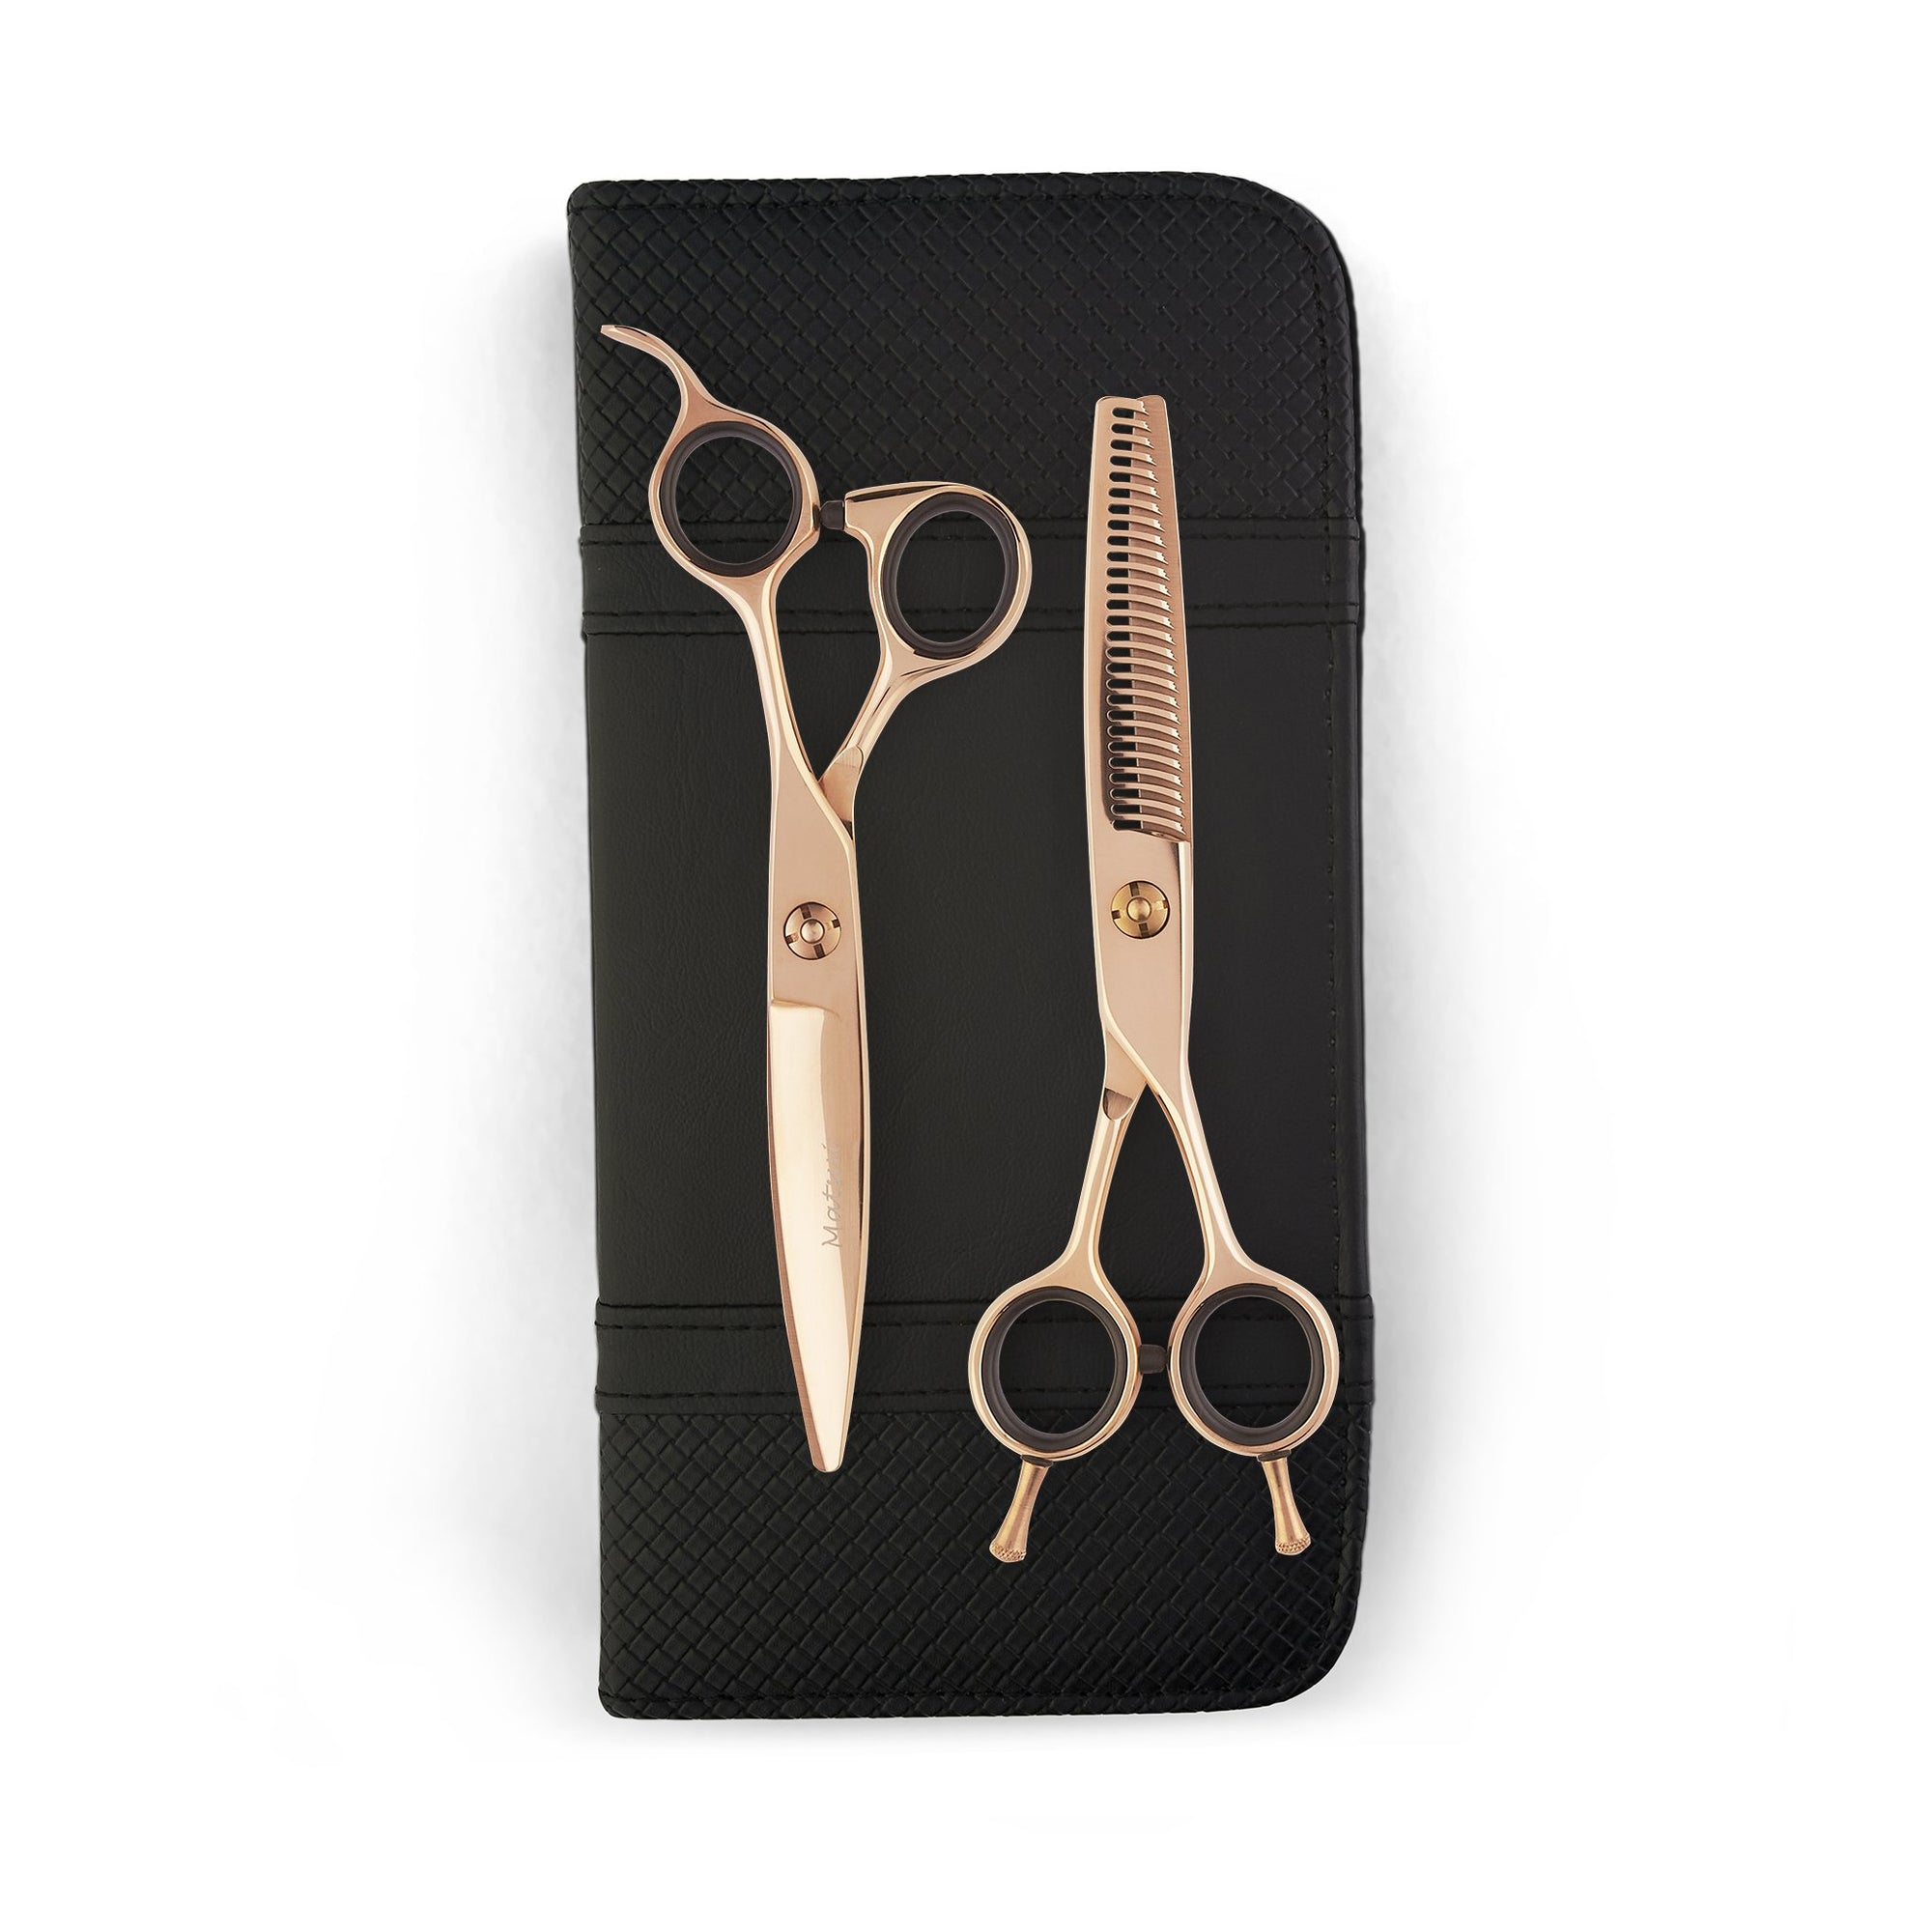 Matsui VG10 Slider Scissor Thinner Combo - Rose Gold (4682374414419)